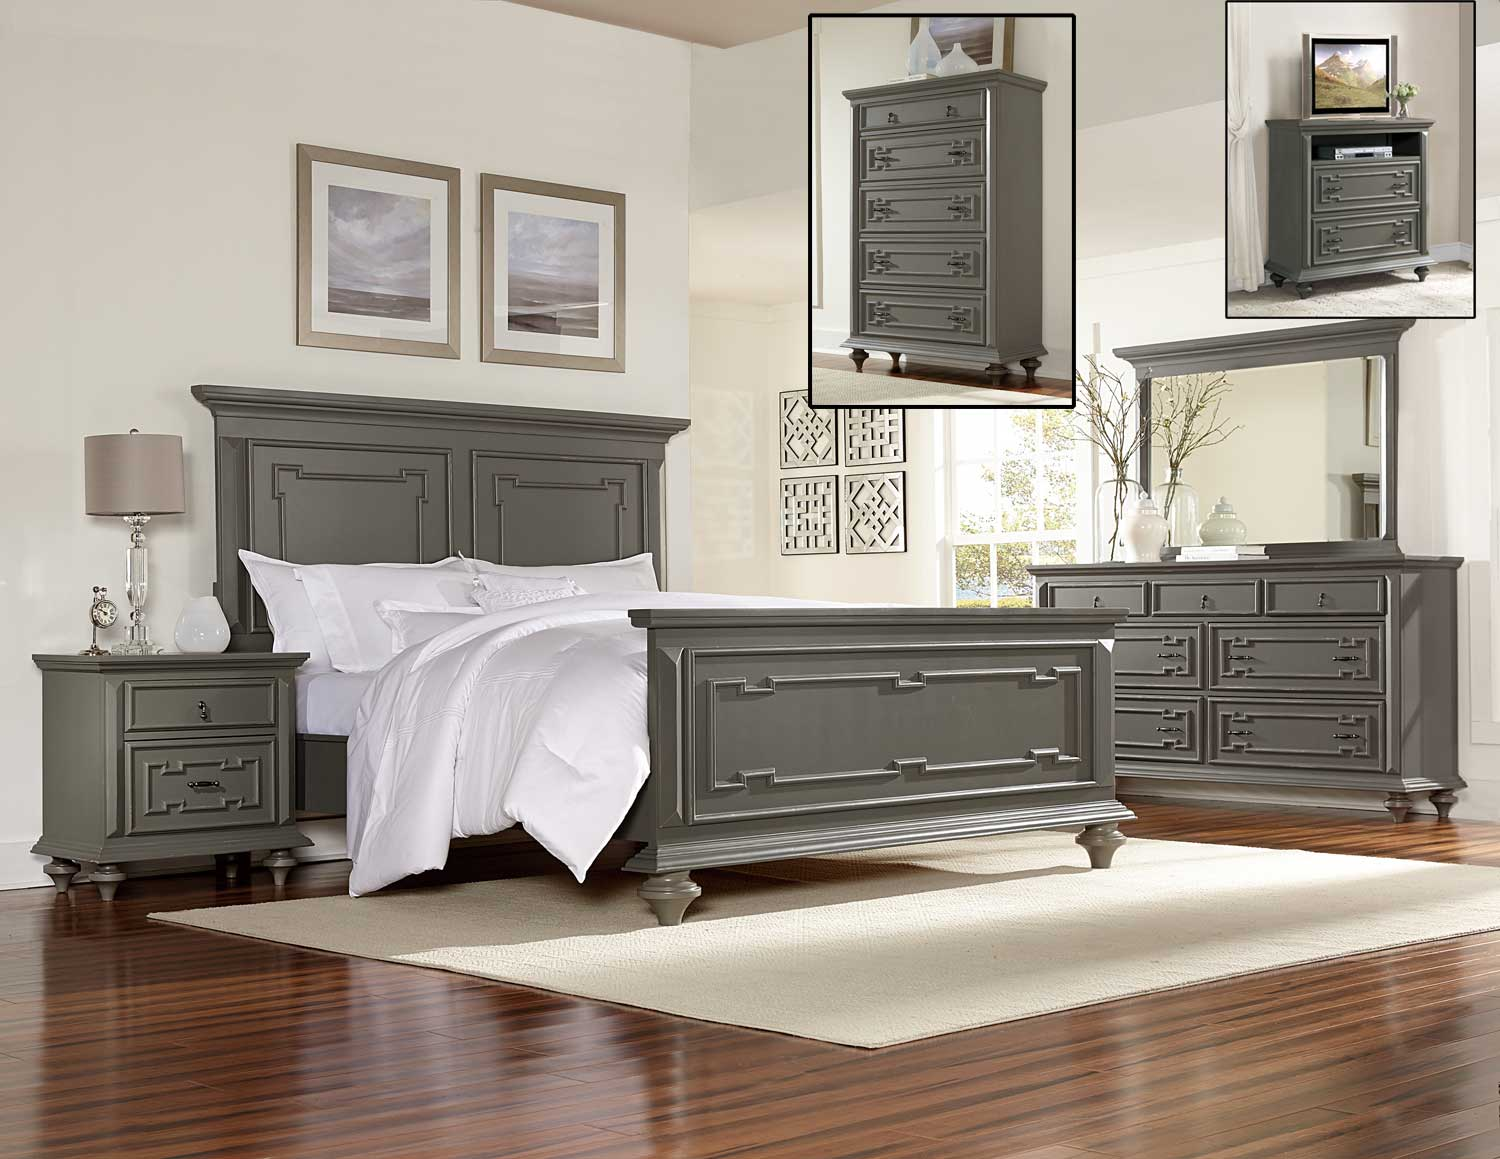 Homelegance marceline bedroom set grey 1866 bedroom set for Gray bedroom furniture sets